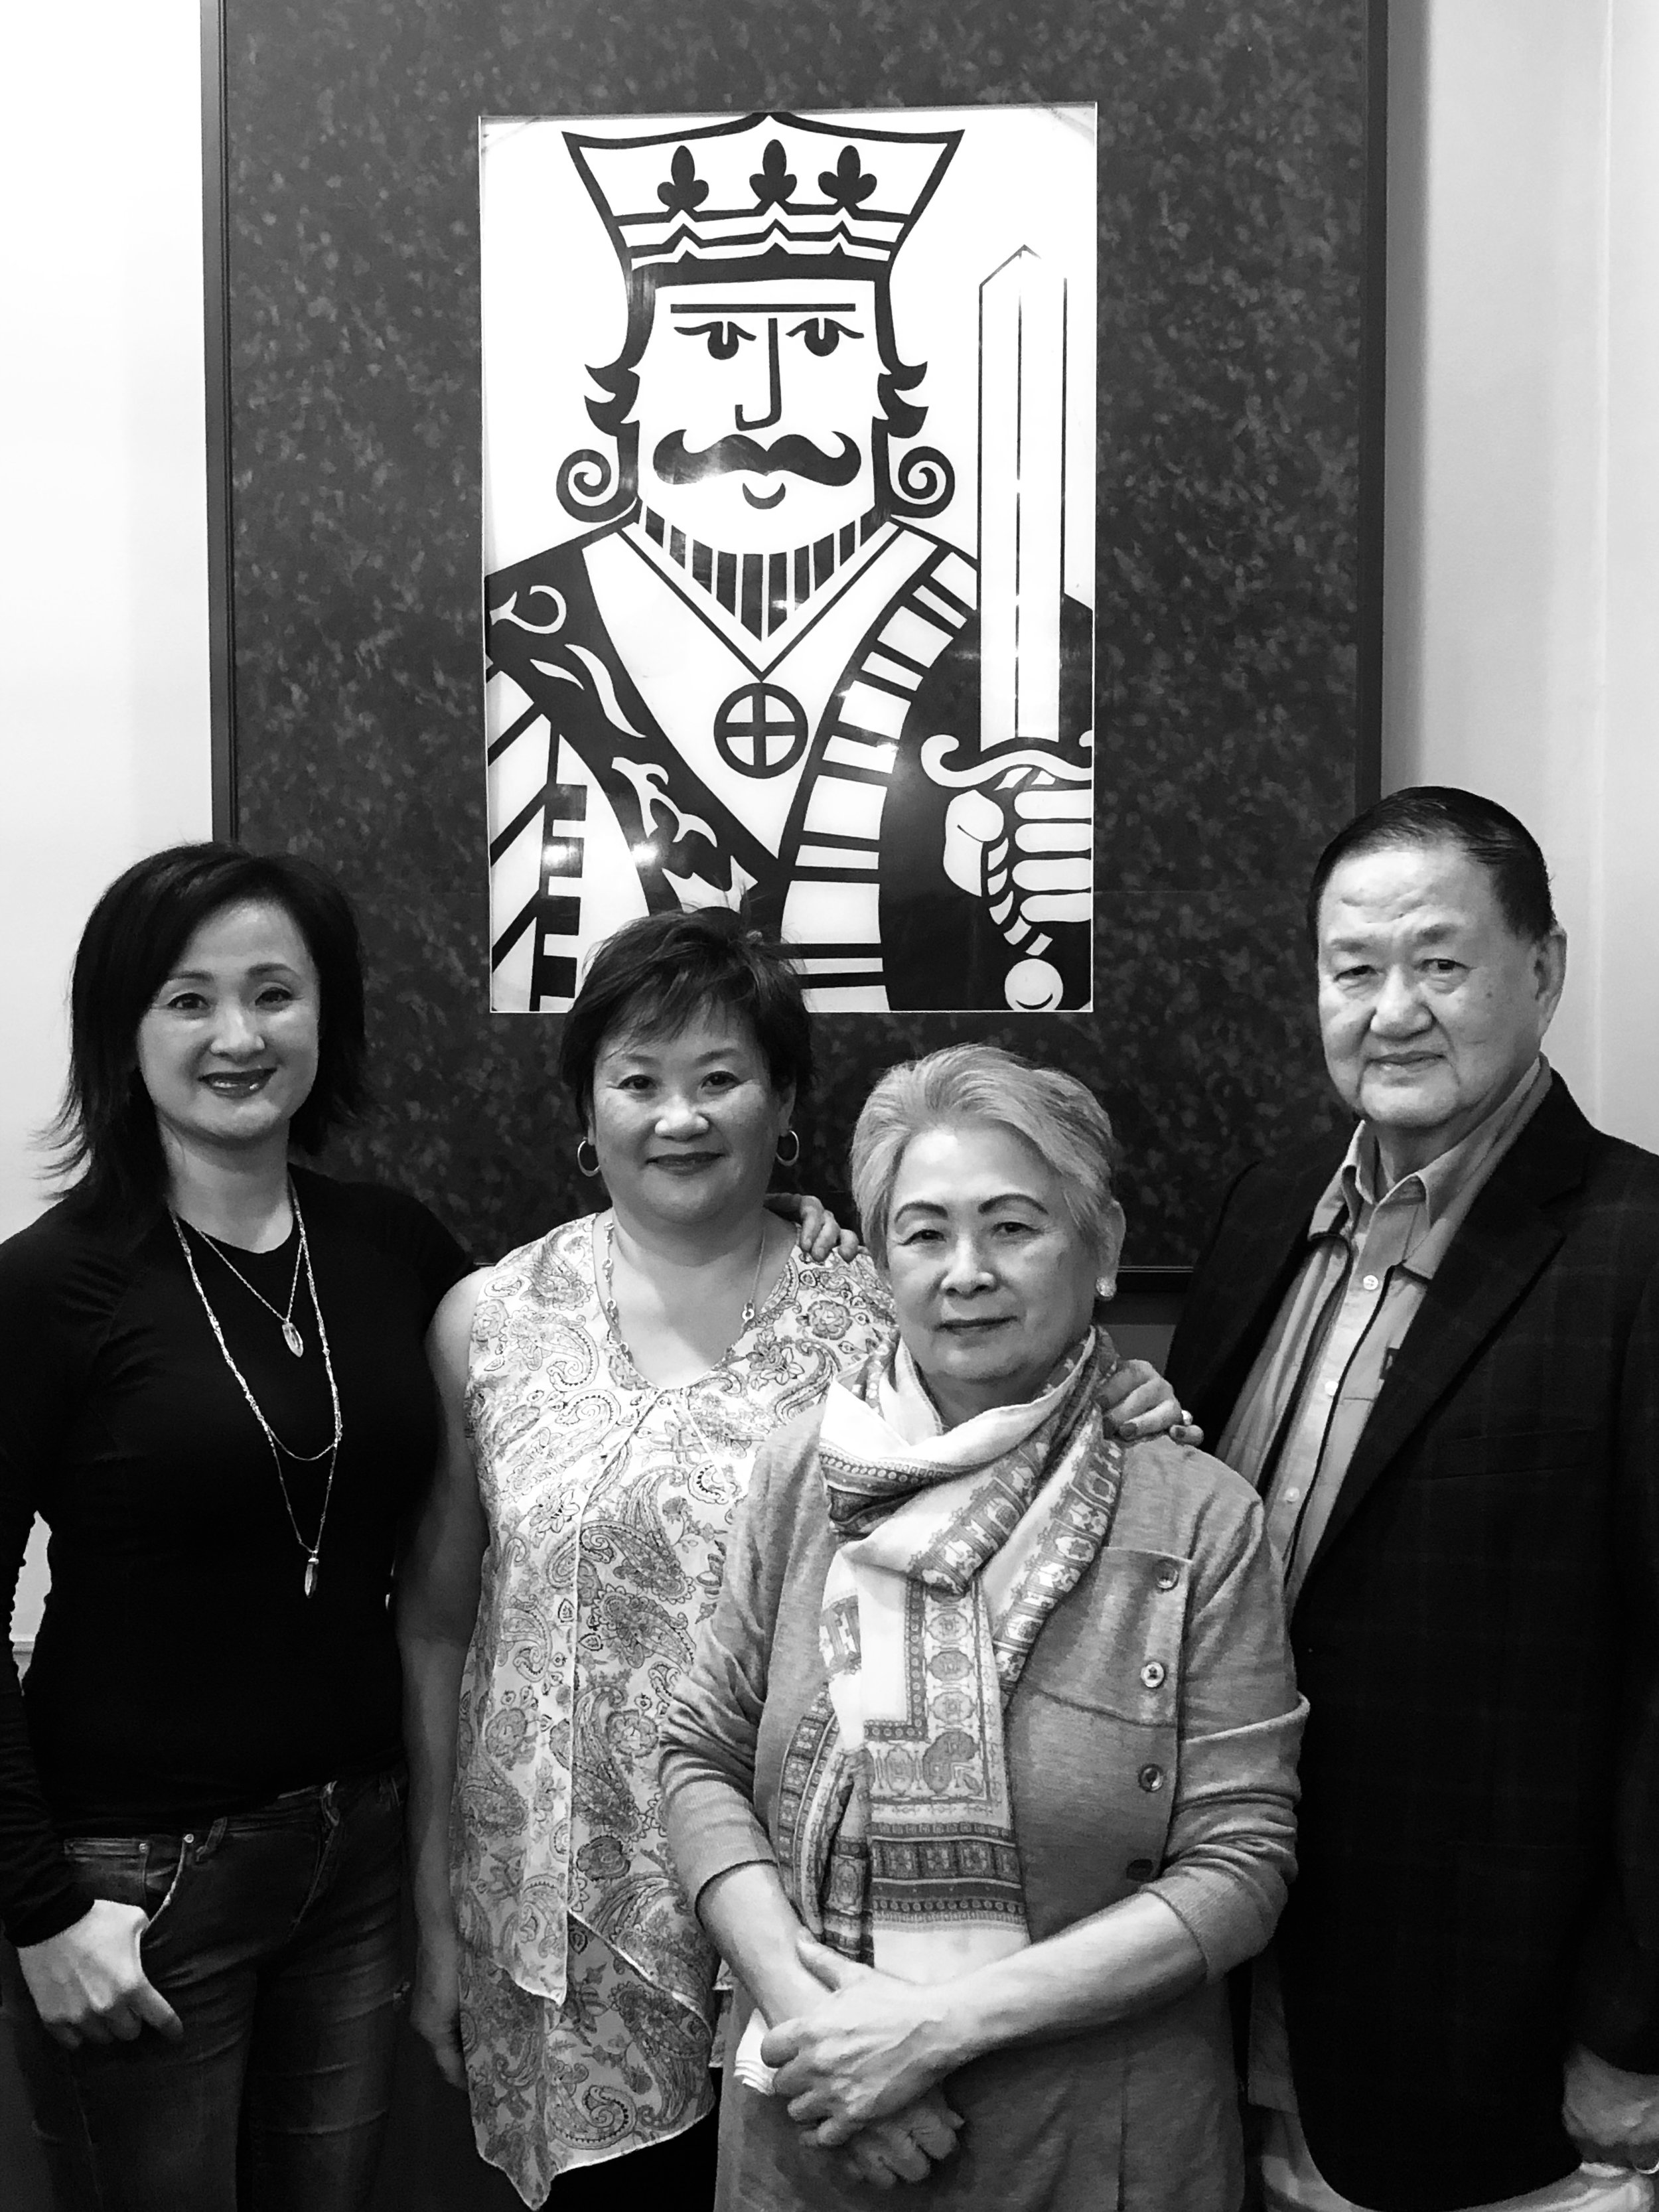 The Chuy family ~ Angela, Christina, the Queen &King, Nellie and Alfredo Chuy